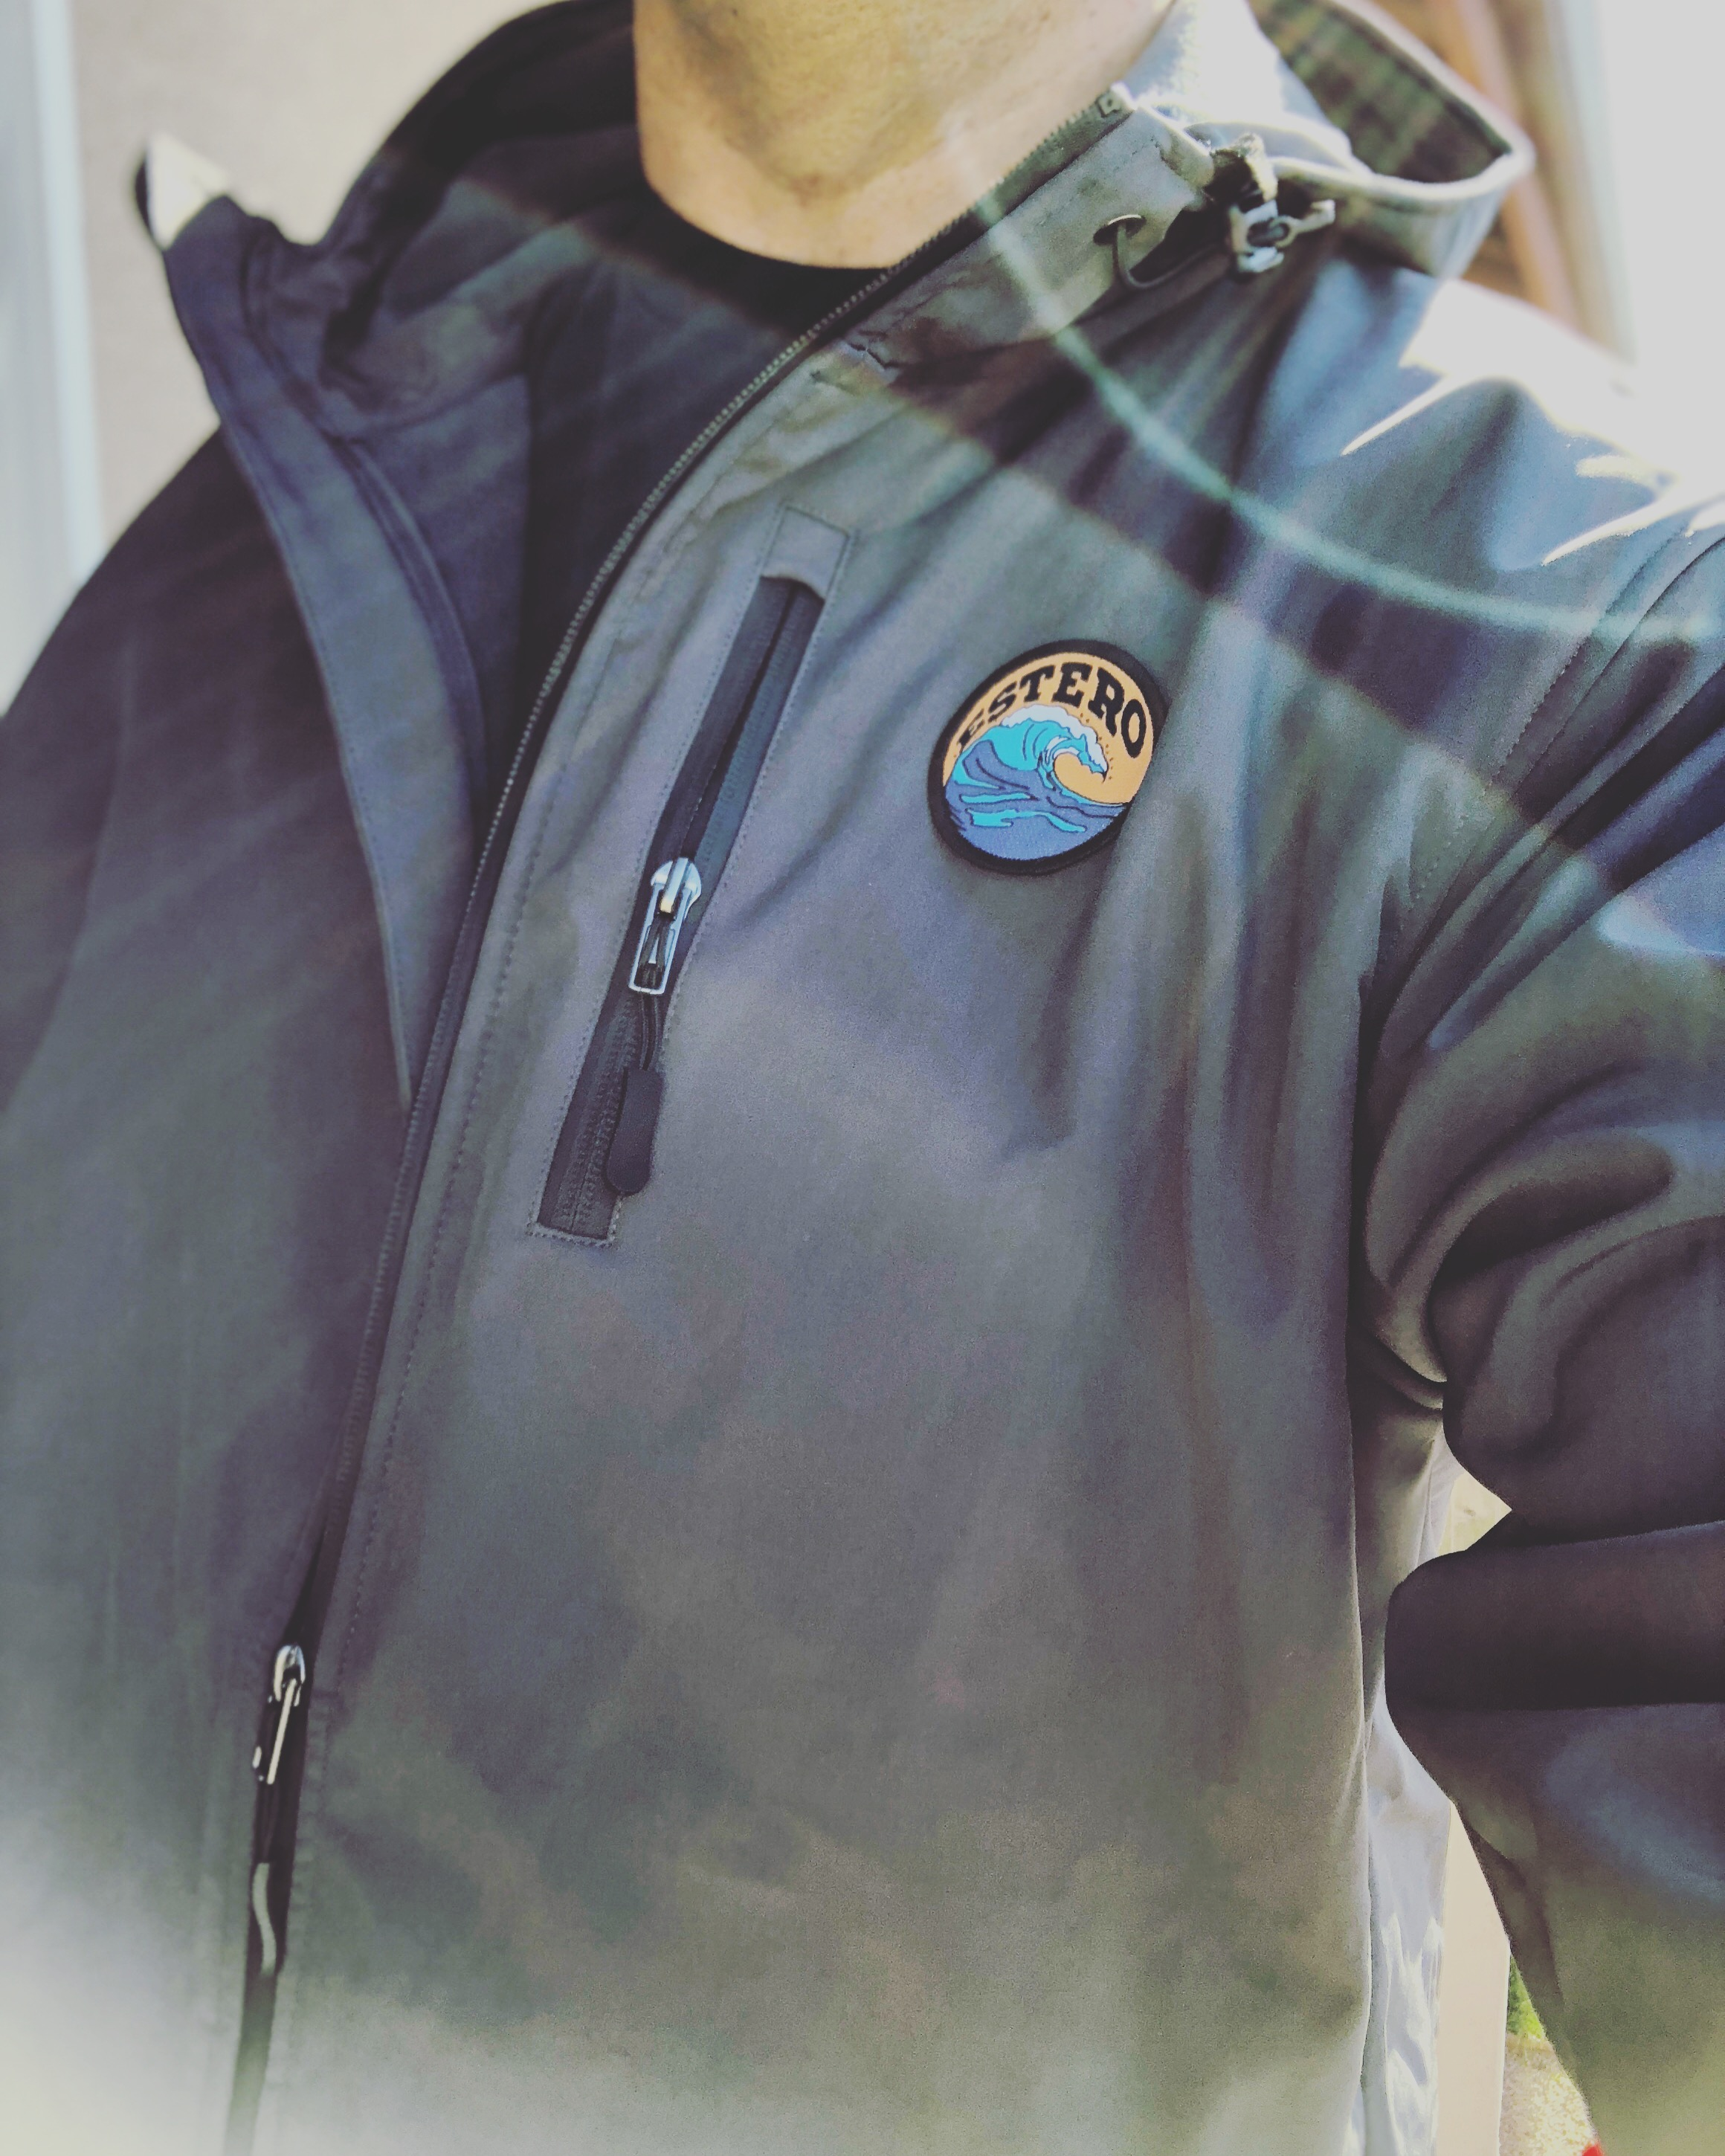 New jackets... - wind resistant/water resistant/weather resistant